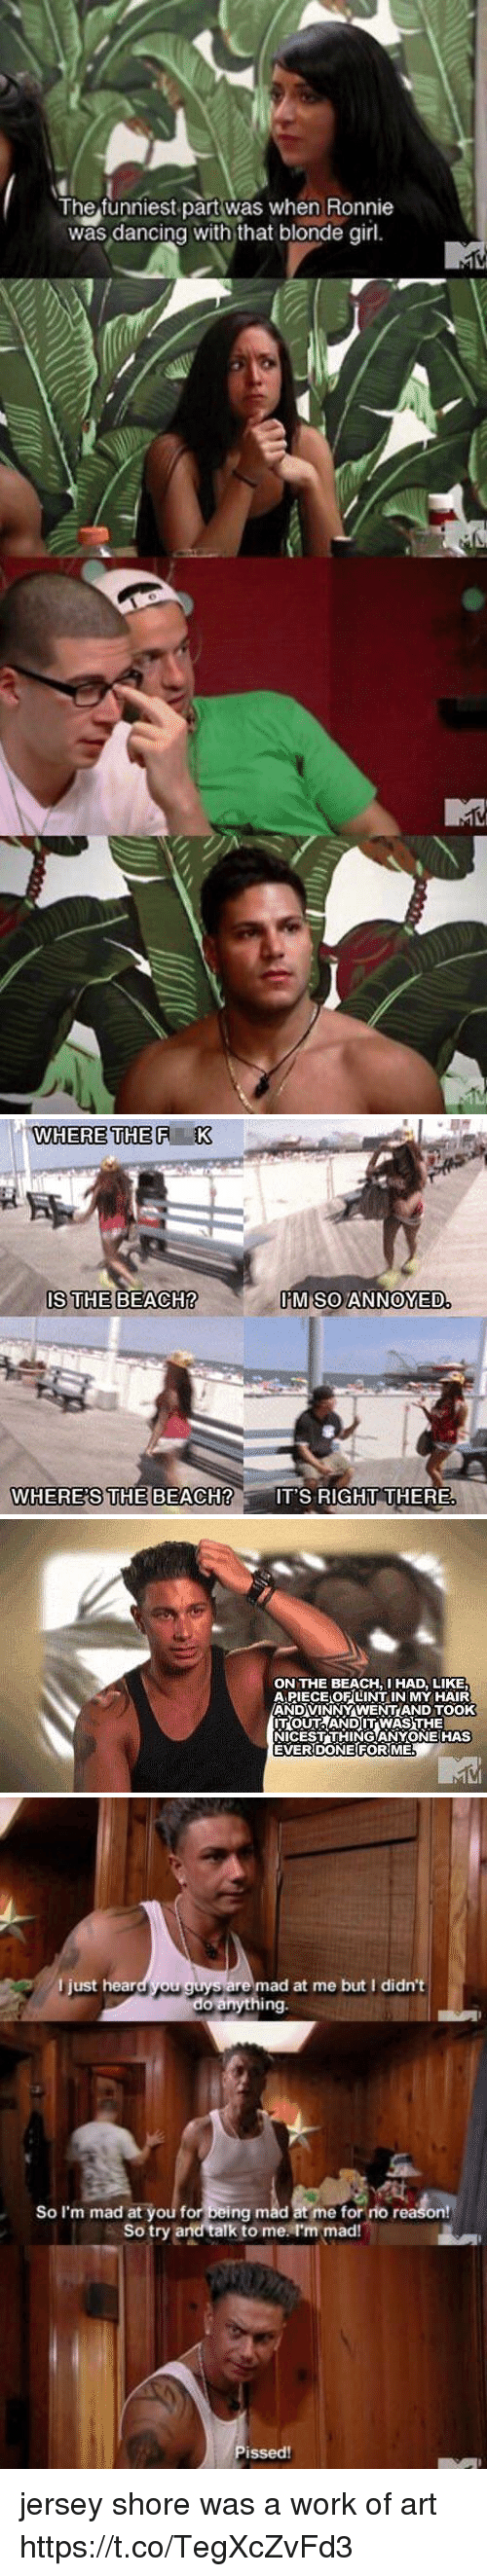 blonde girl: The funniest part was when Honnie  was dancing with that blonde girl.   WHERE THE F  K  IS THE BEACH?  IM SO ANNOYED  WHERES THE BEACH?  IT'S RIGHT THERE   ONTHE BEACH, I HAD, LIKE  APIECEOF LINT IN MY HAIR  ANDVINNYAWENTAND TOOK  ITOUTTAANDITWASUHE  NICEST THINGANYONE HAS  EVER DONE FOR ME   l just hear  ou guys are mad at me but I didn't  do anything.  So I'm mad at you for being mad at me for no reason!  So try and talk to me I'm mad!  Pissed! jersey shore was a work of art https://t.co/TegXcZvFd3